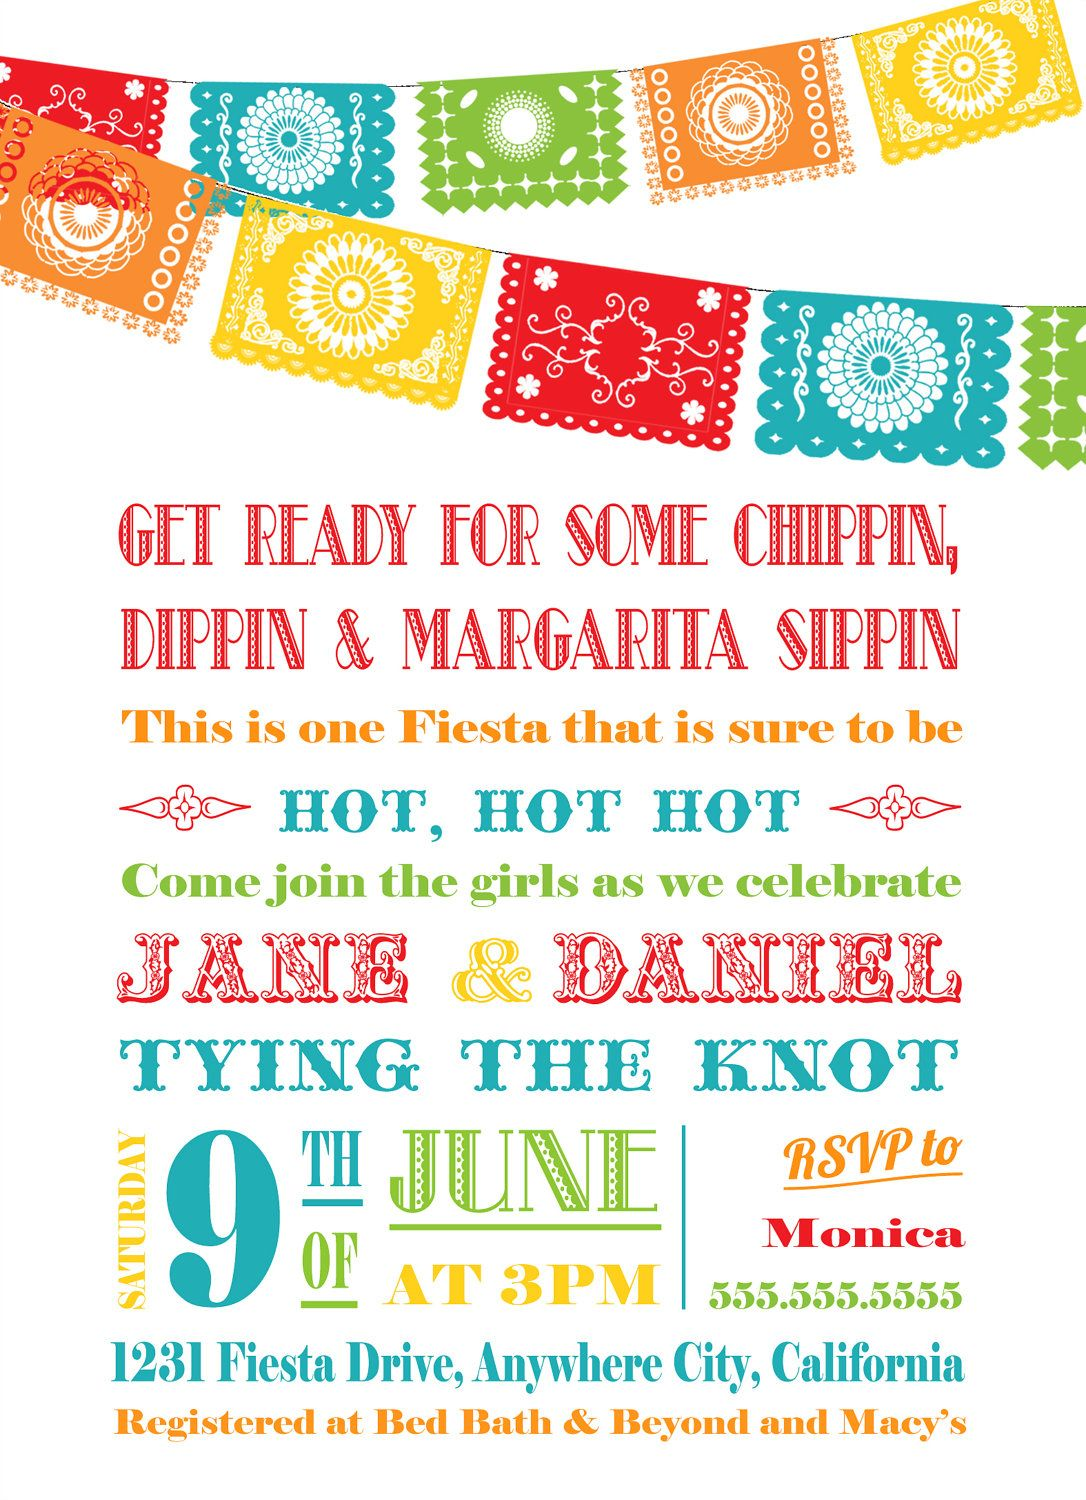 Fiesta Bridal Shower Invitation - Papel Picado Bunting. $16.00 ...